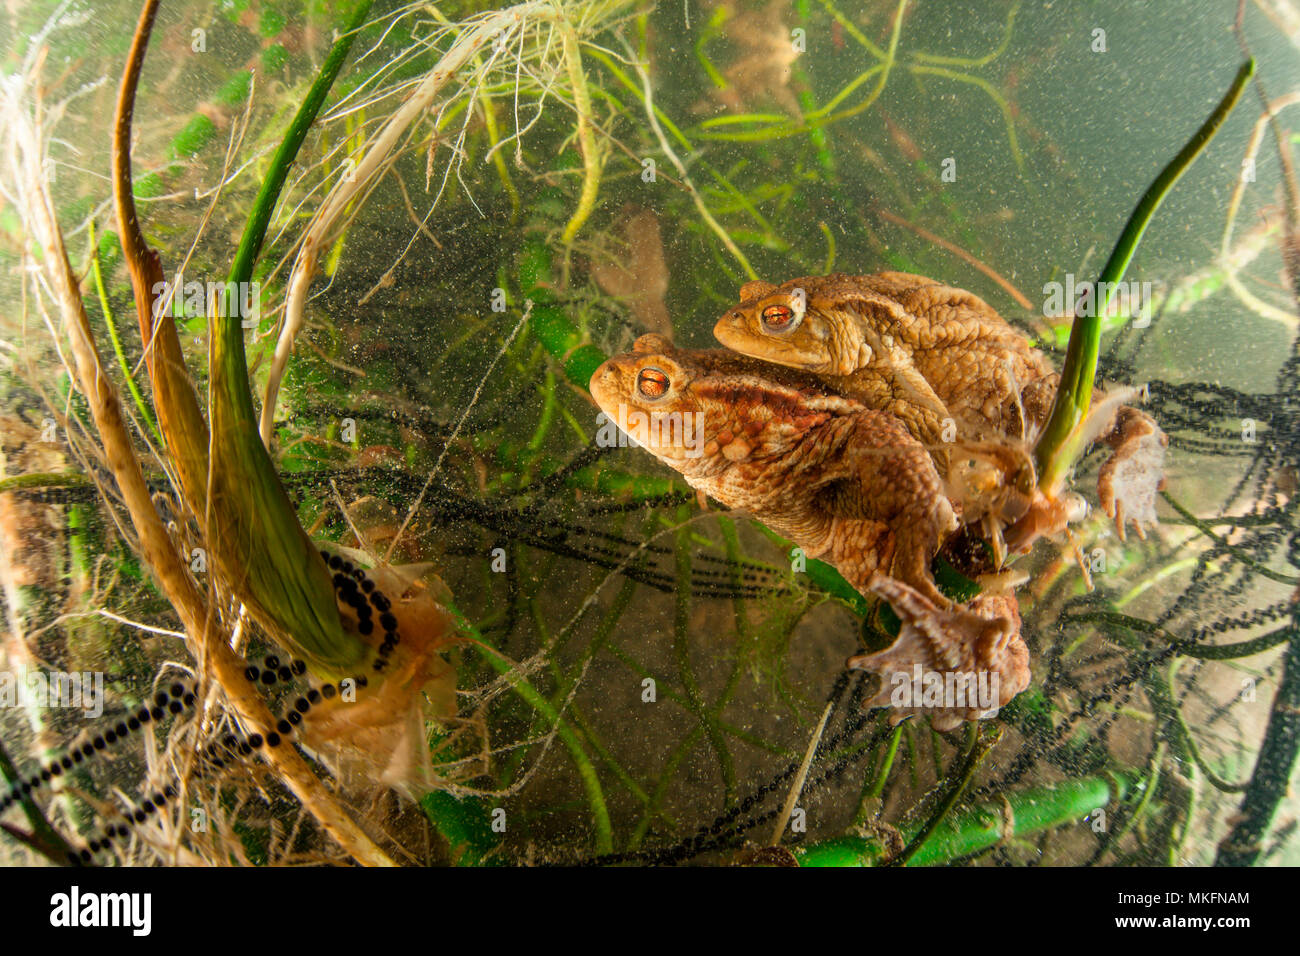 Reproduction of Common Toads (Bufo bufo) and their eggs in a lake, Ain, France - Stock Image